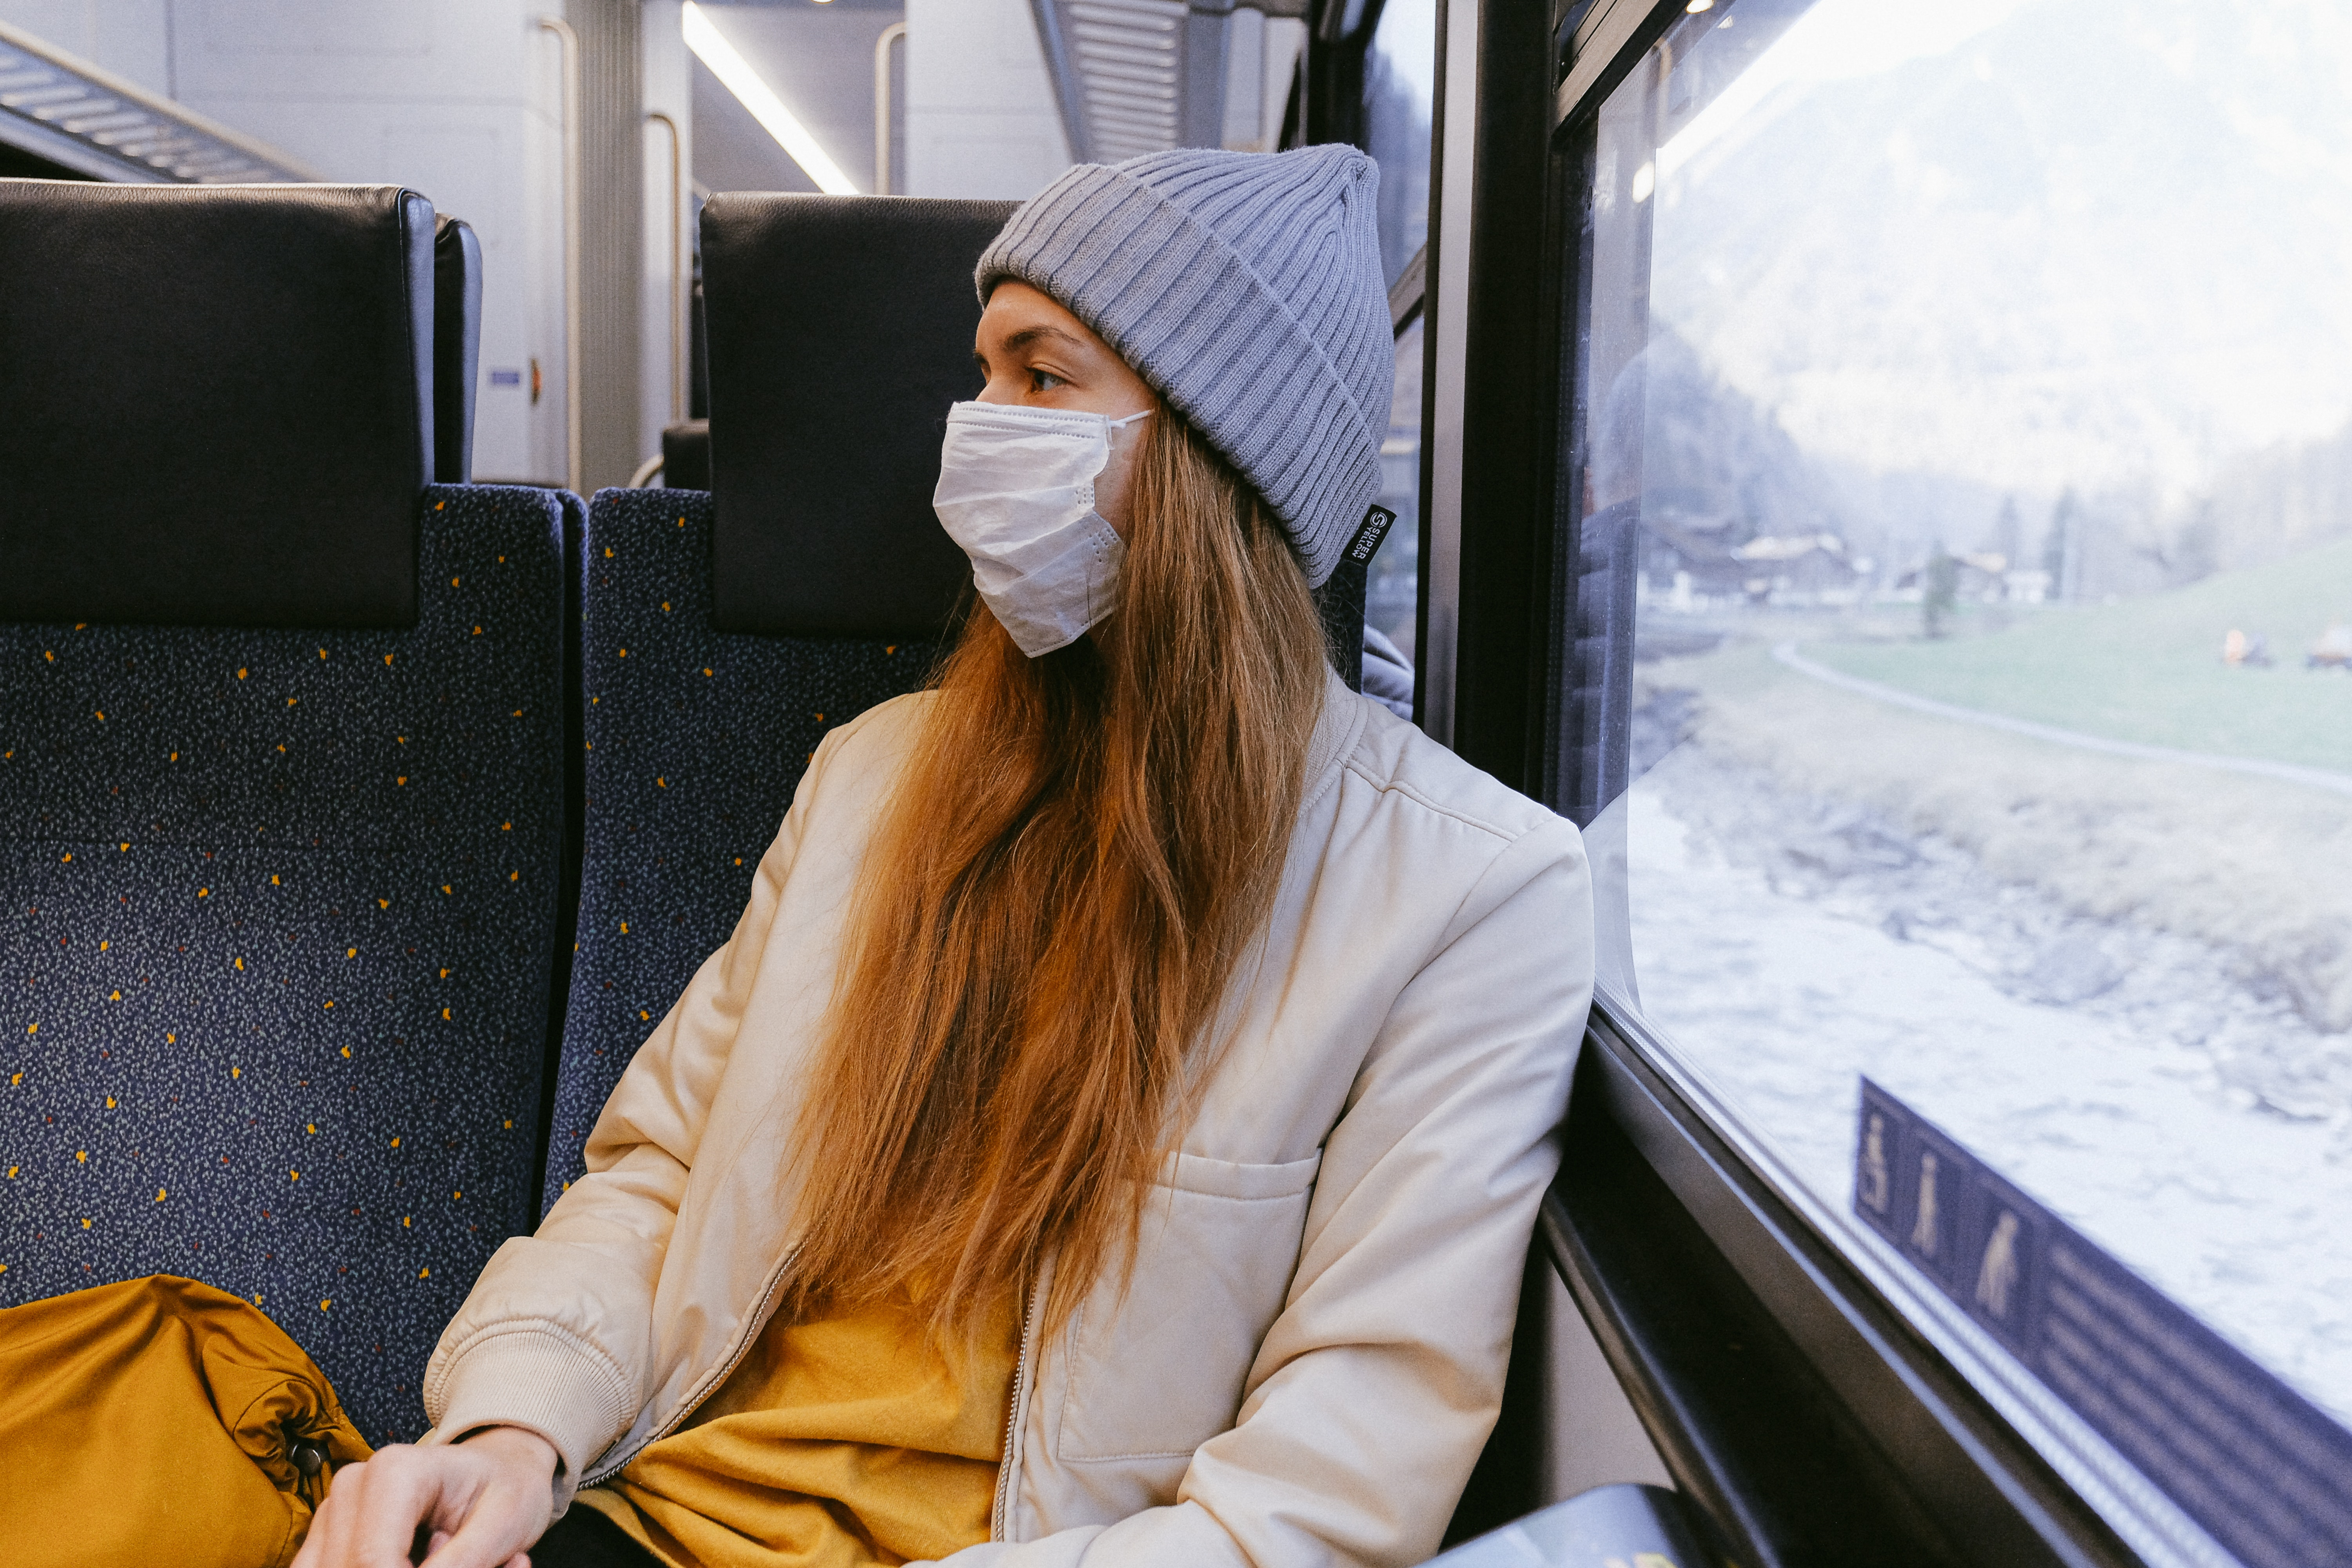 Riding a train with a mask on